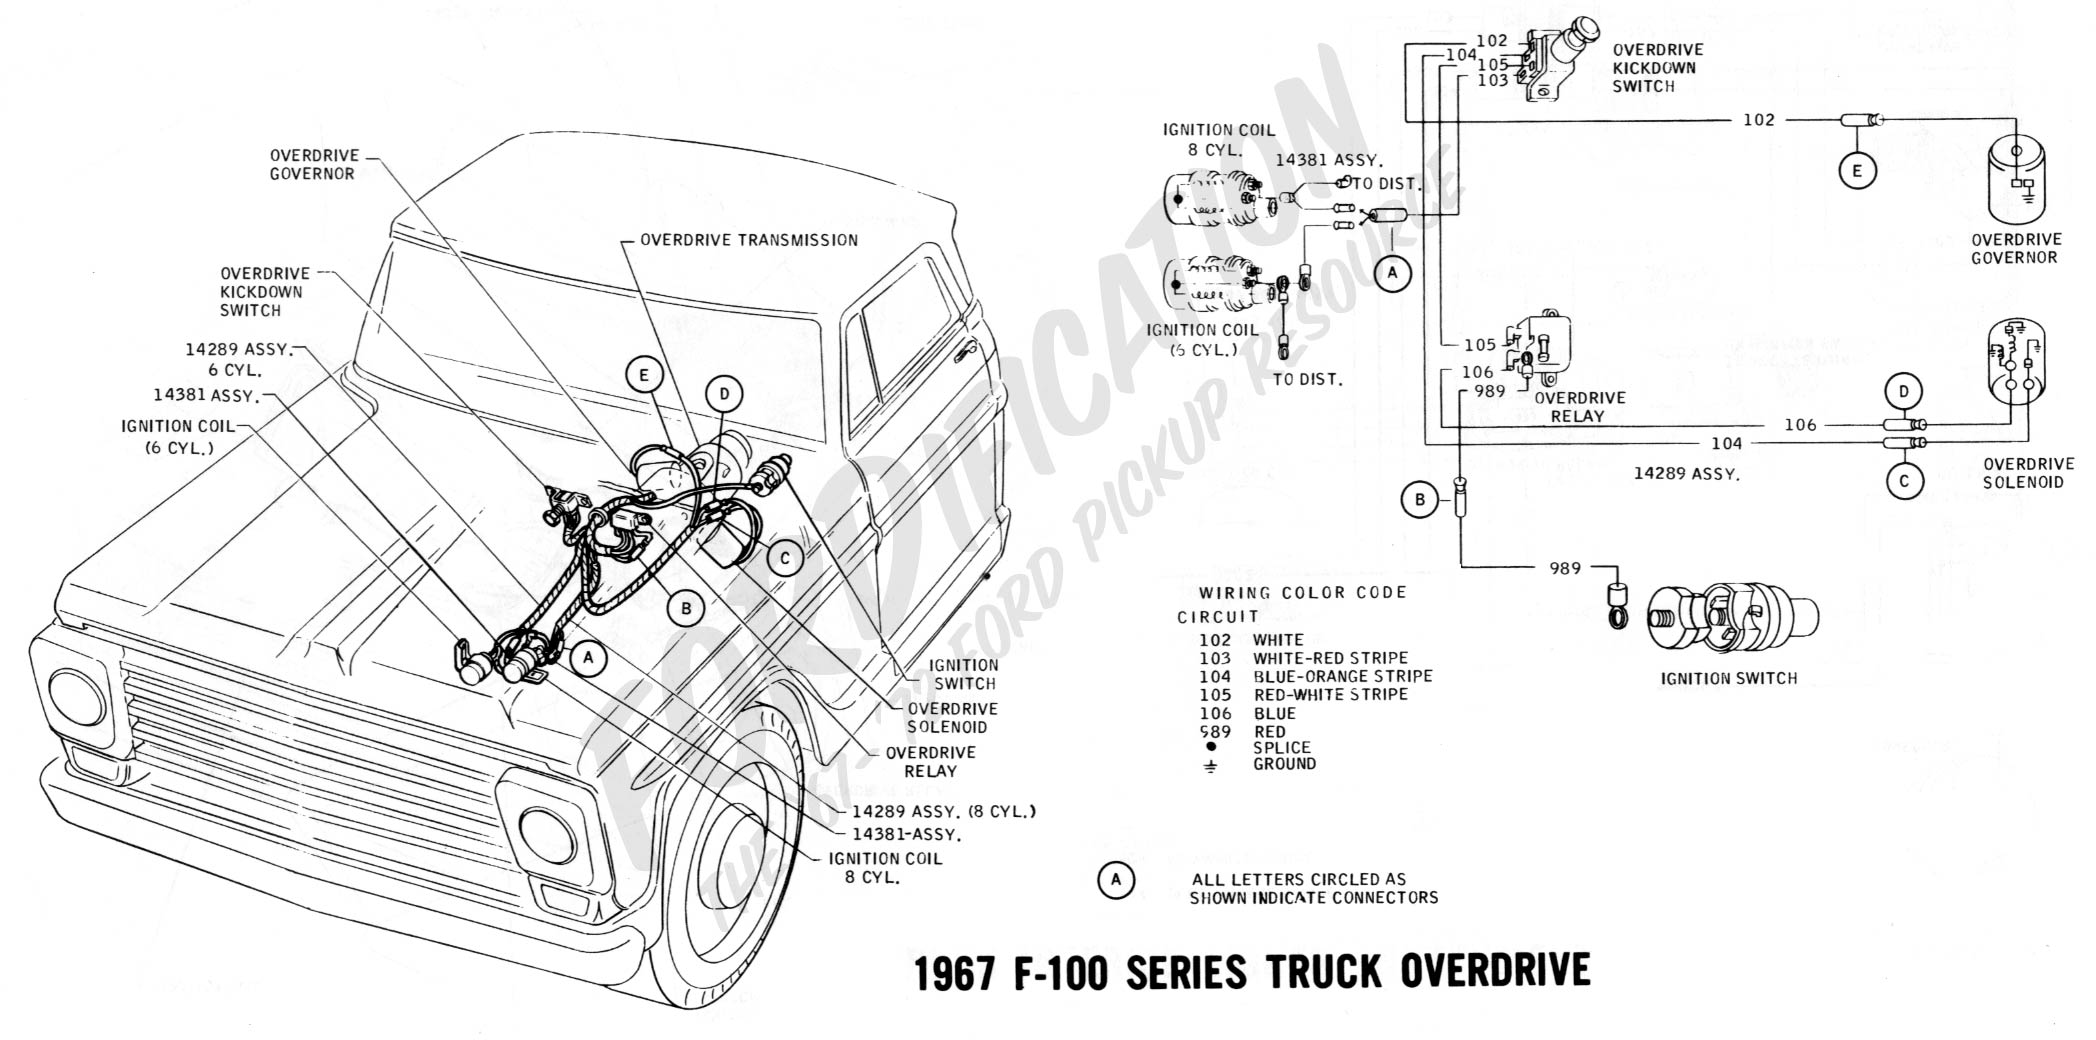 Ford truck technical drawings and schematics section h wiring 1967 f 100 series overdrive 1968 wiring schematics cheapraybanclubmaster Gallery